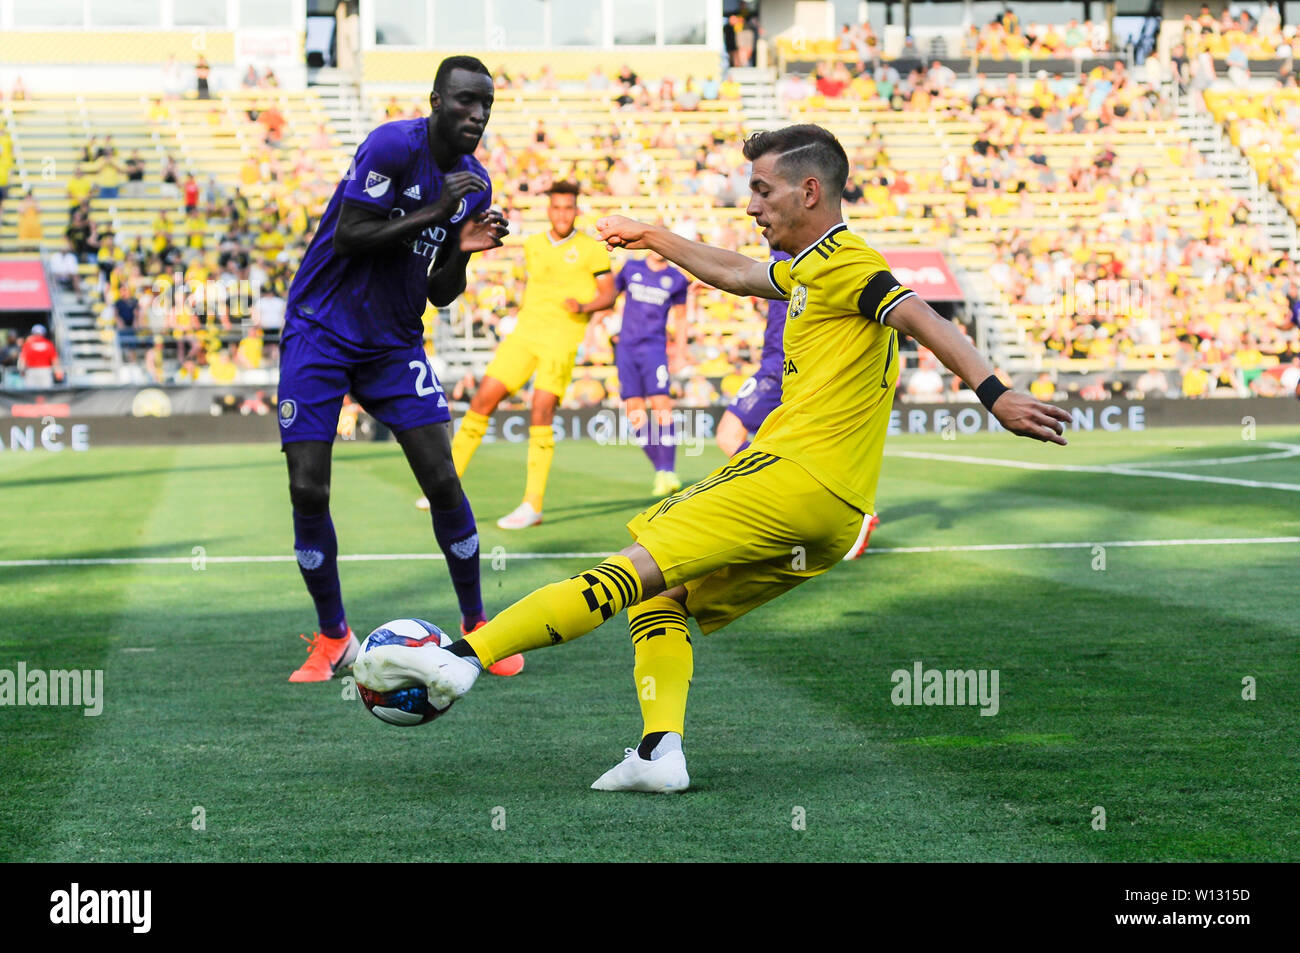 Saturday, June 29, 2019: Columbus Crew SC forward Pedro Santos (7) in the first half of the match between Orlando City and Columbus Crew SC at MAPFRE Stadium, in Columbus OH. Mandatory Photo Credit: Dorn Byg/Cal Sport Media. Orlando City 1 - Columbus Crew SC 0 after the first half - Stock Image